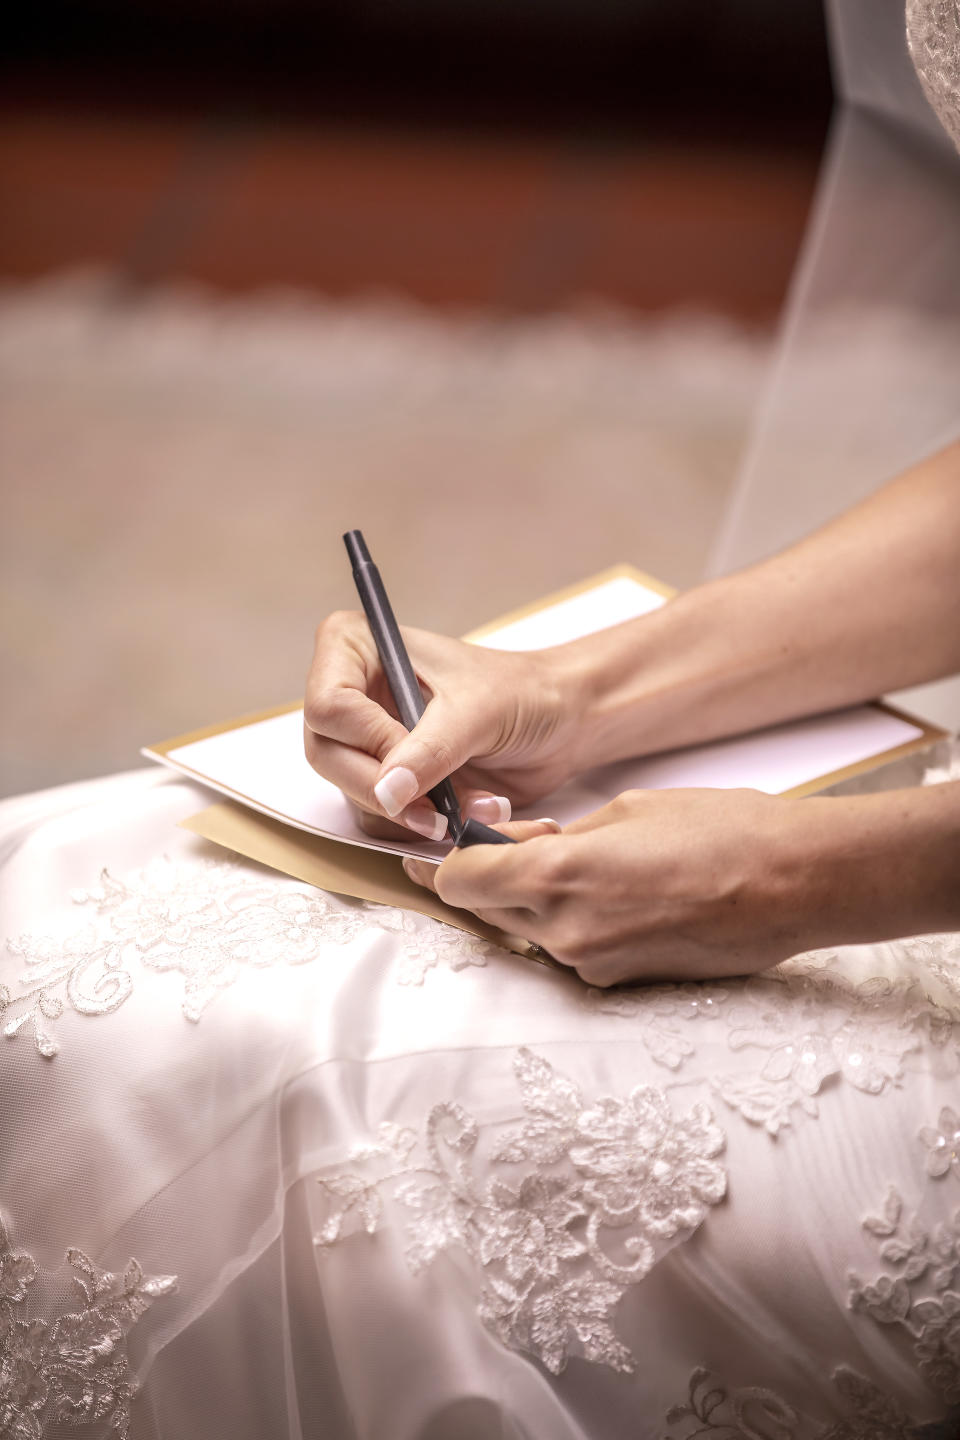 Wedding ceremony vows being written by a bride to be on a pad of paper